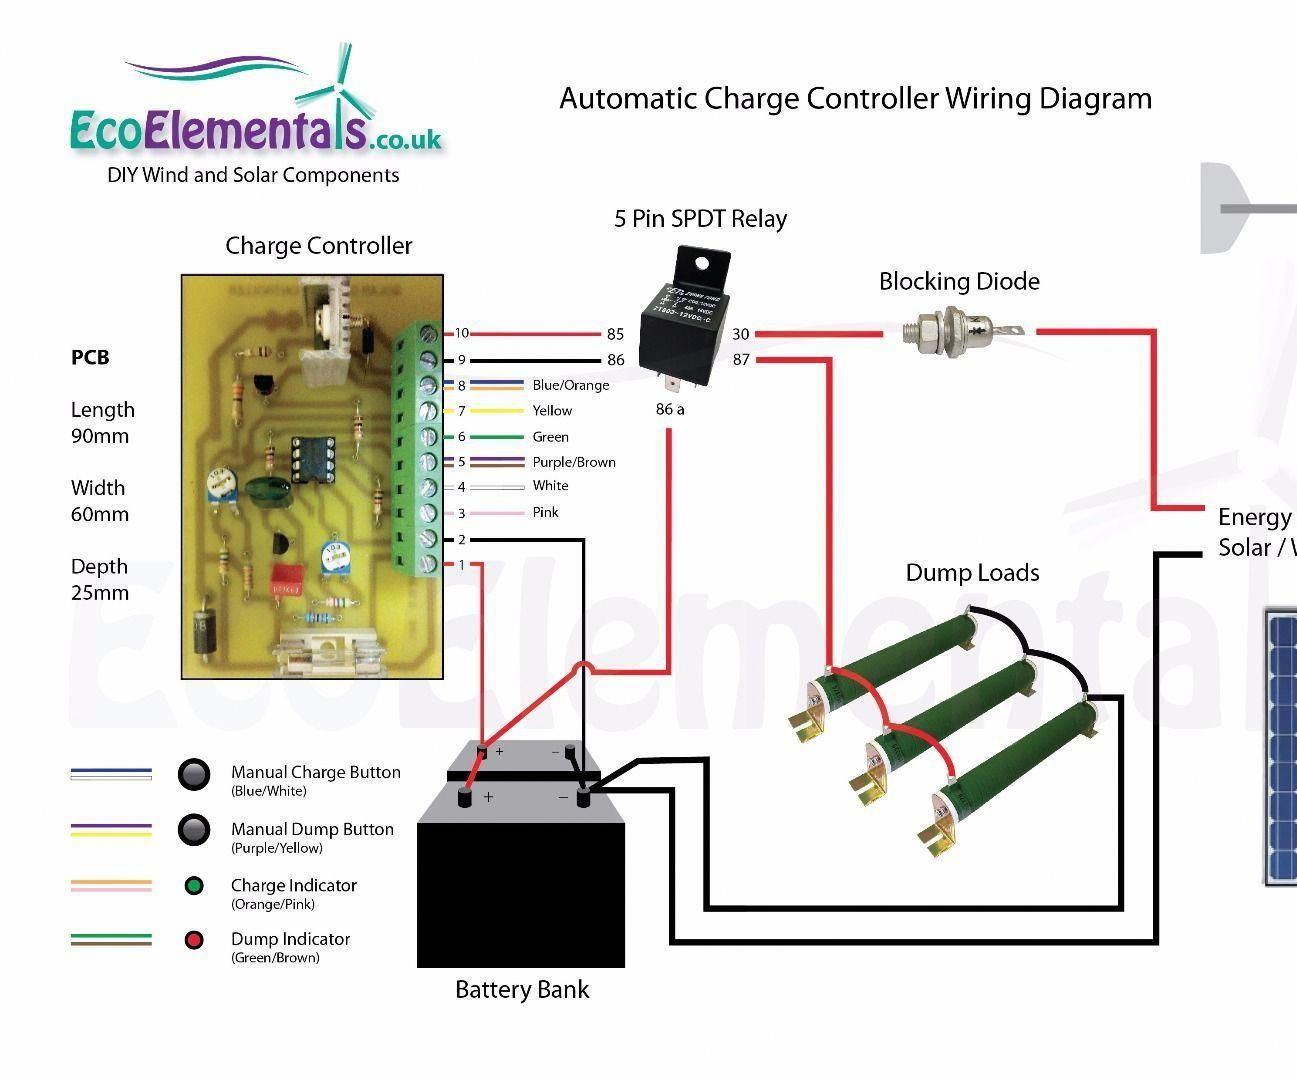 charge controller wiring diagram for diy wind turbine or solar panels solarpanels [ 1297 x 1080 Pixel ]